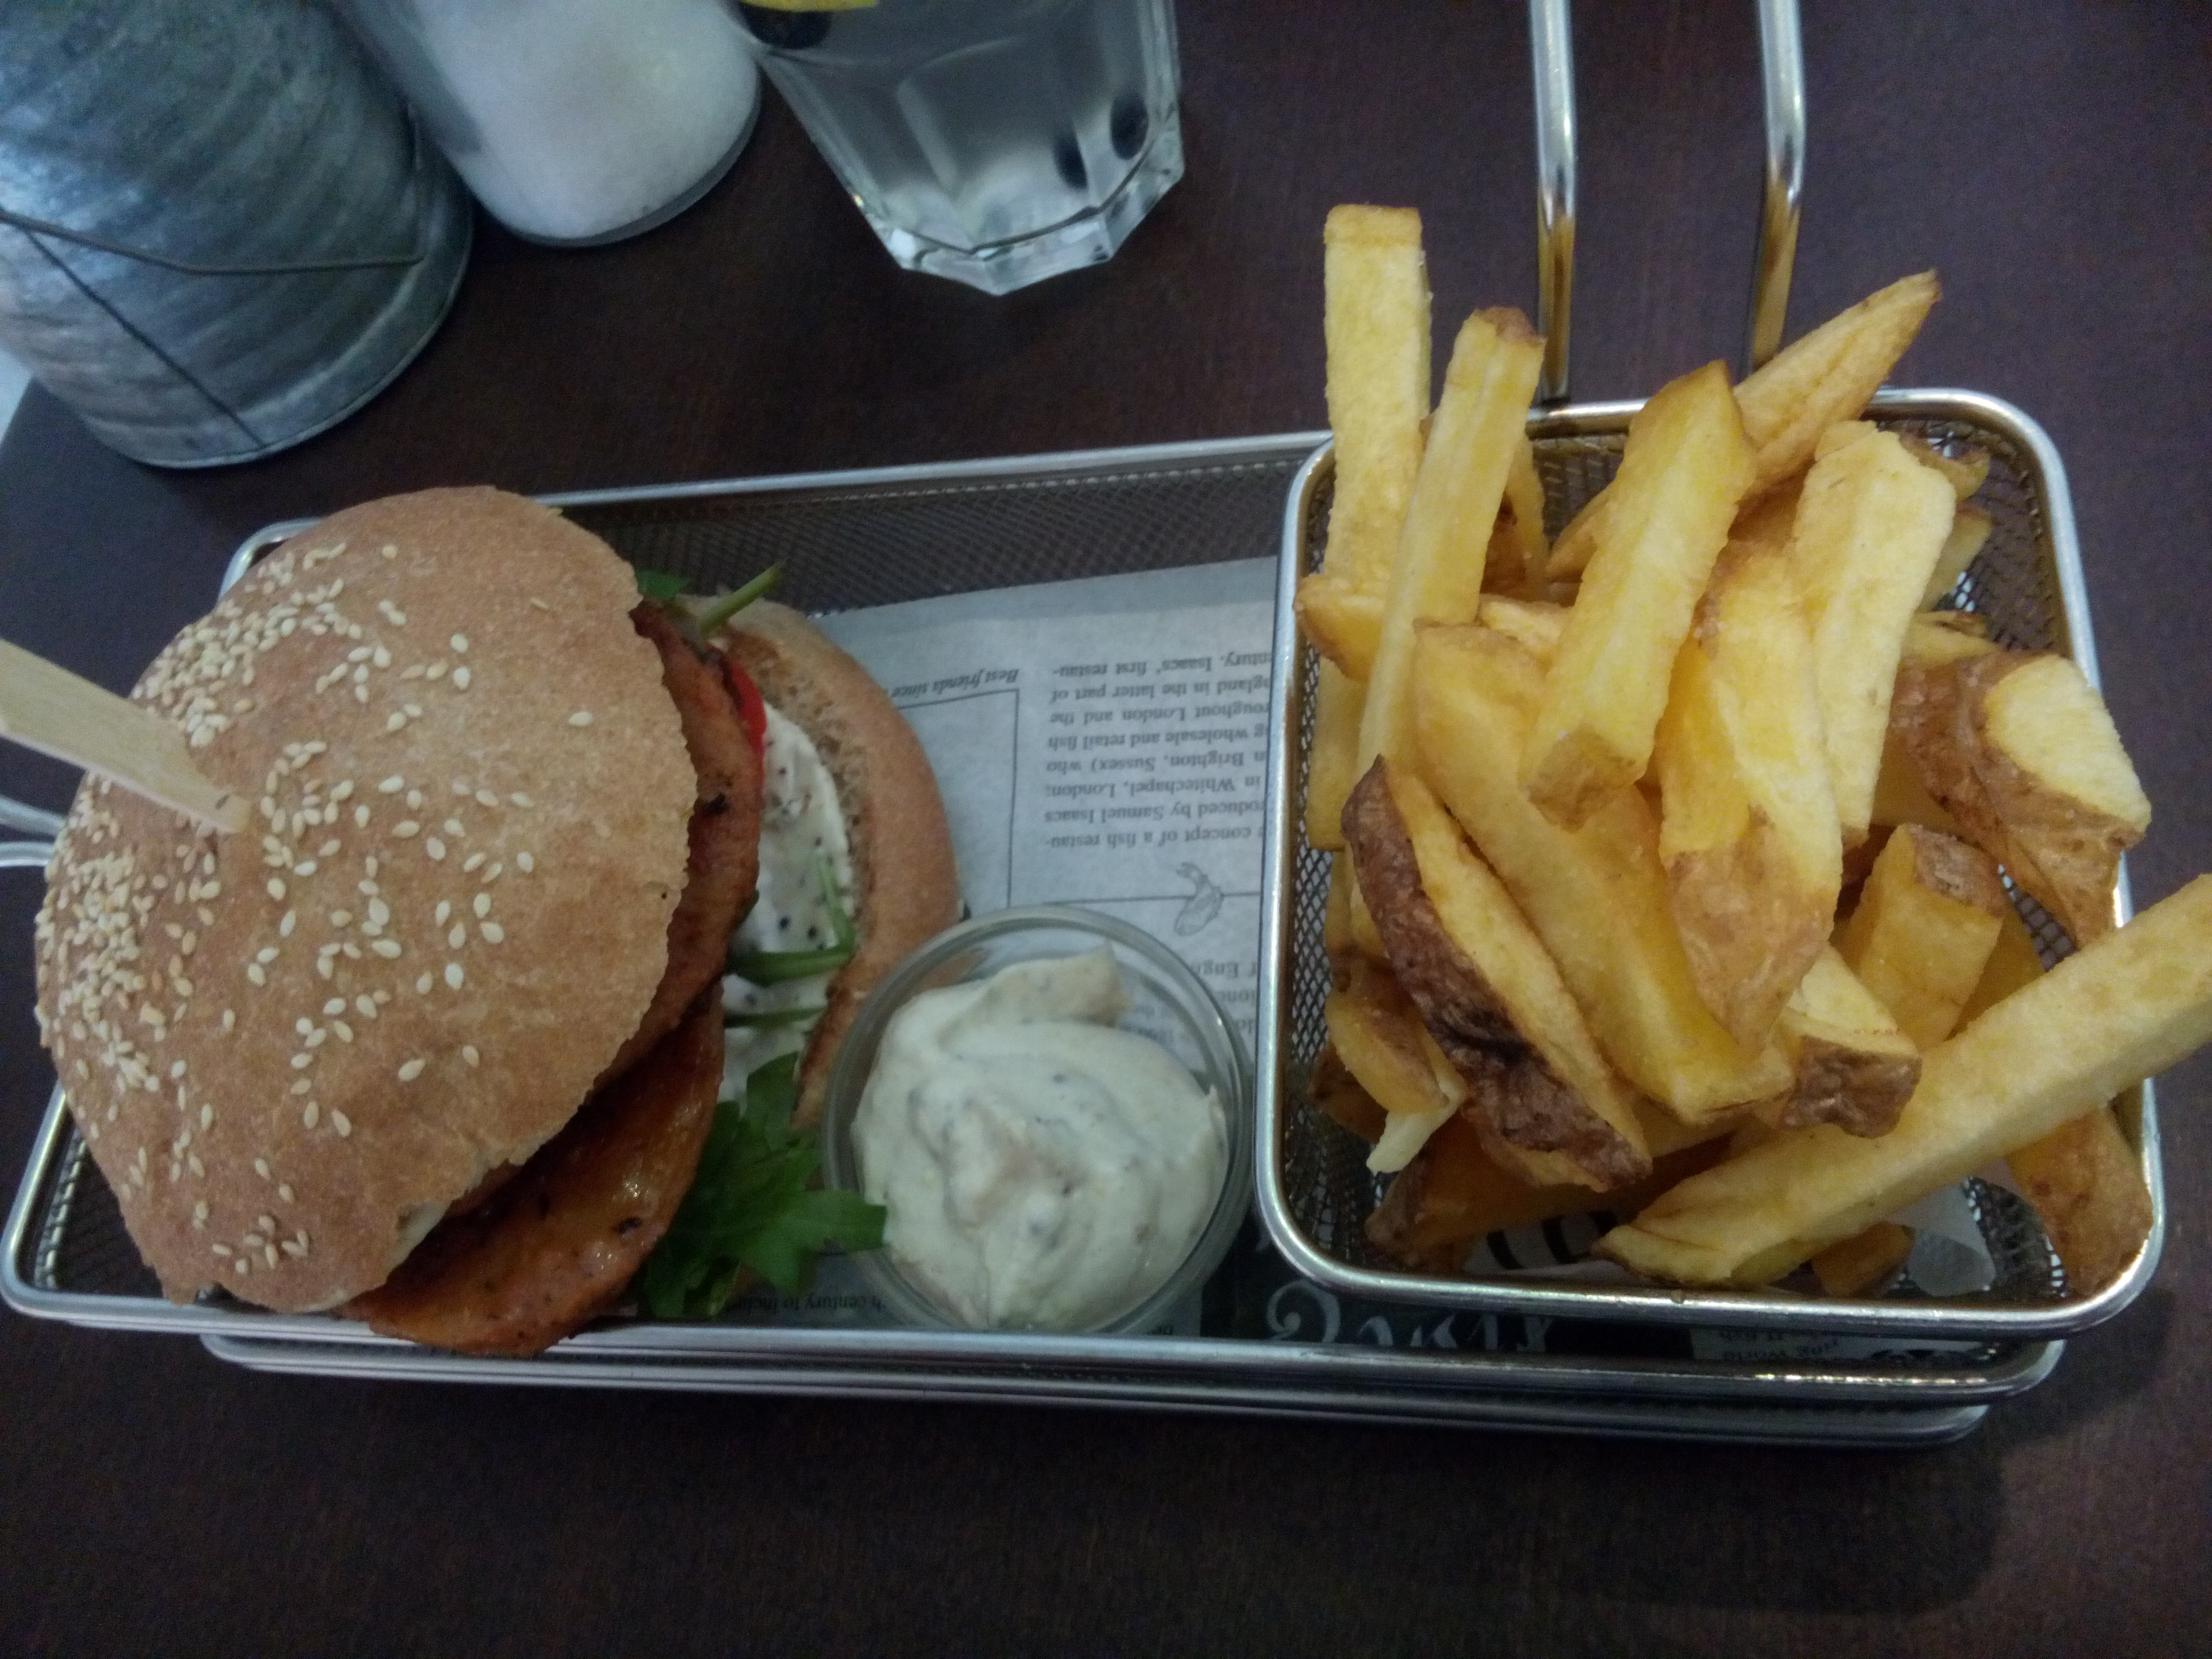 A metal basket with fries, a small pot of mayo and a burger from above